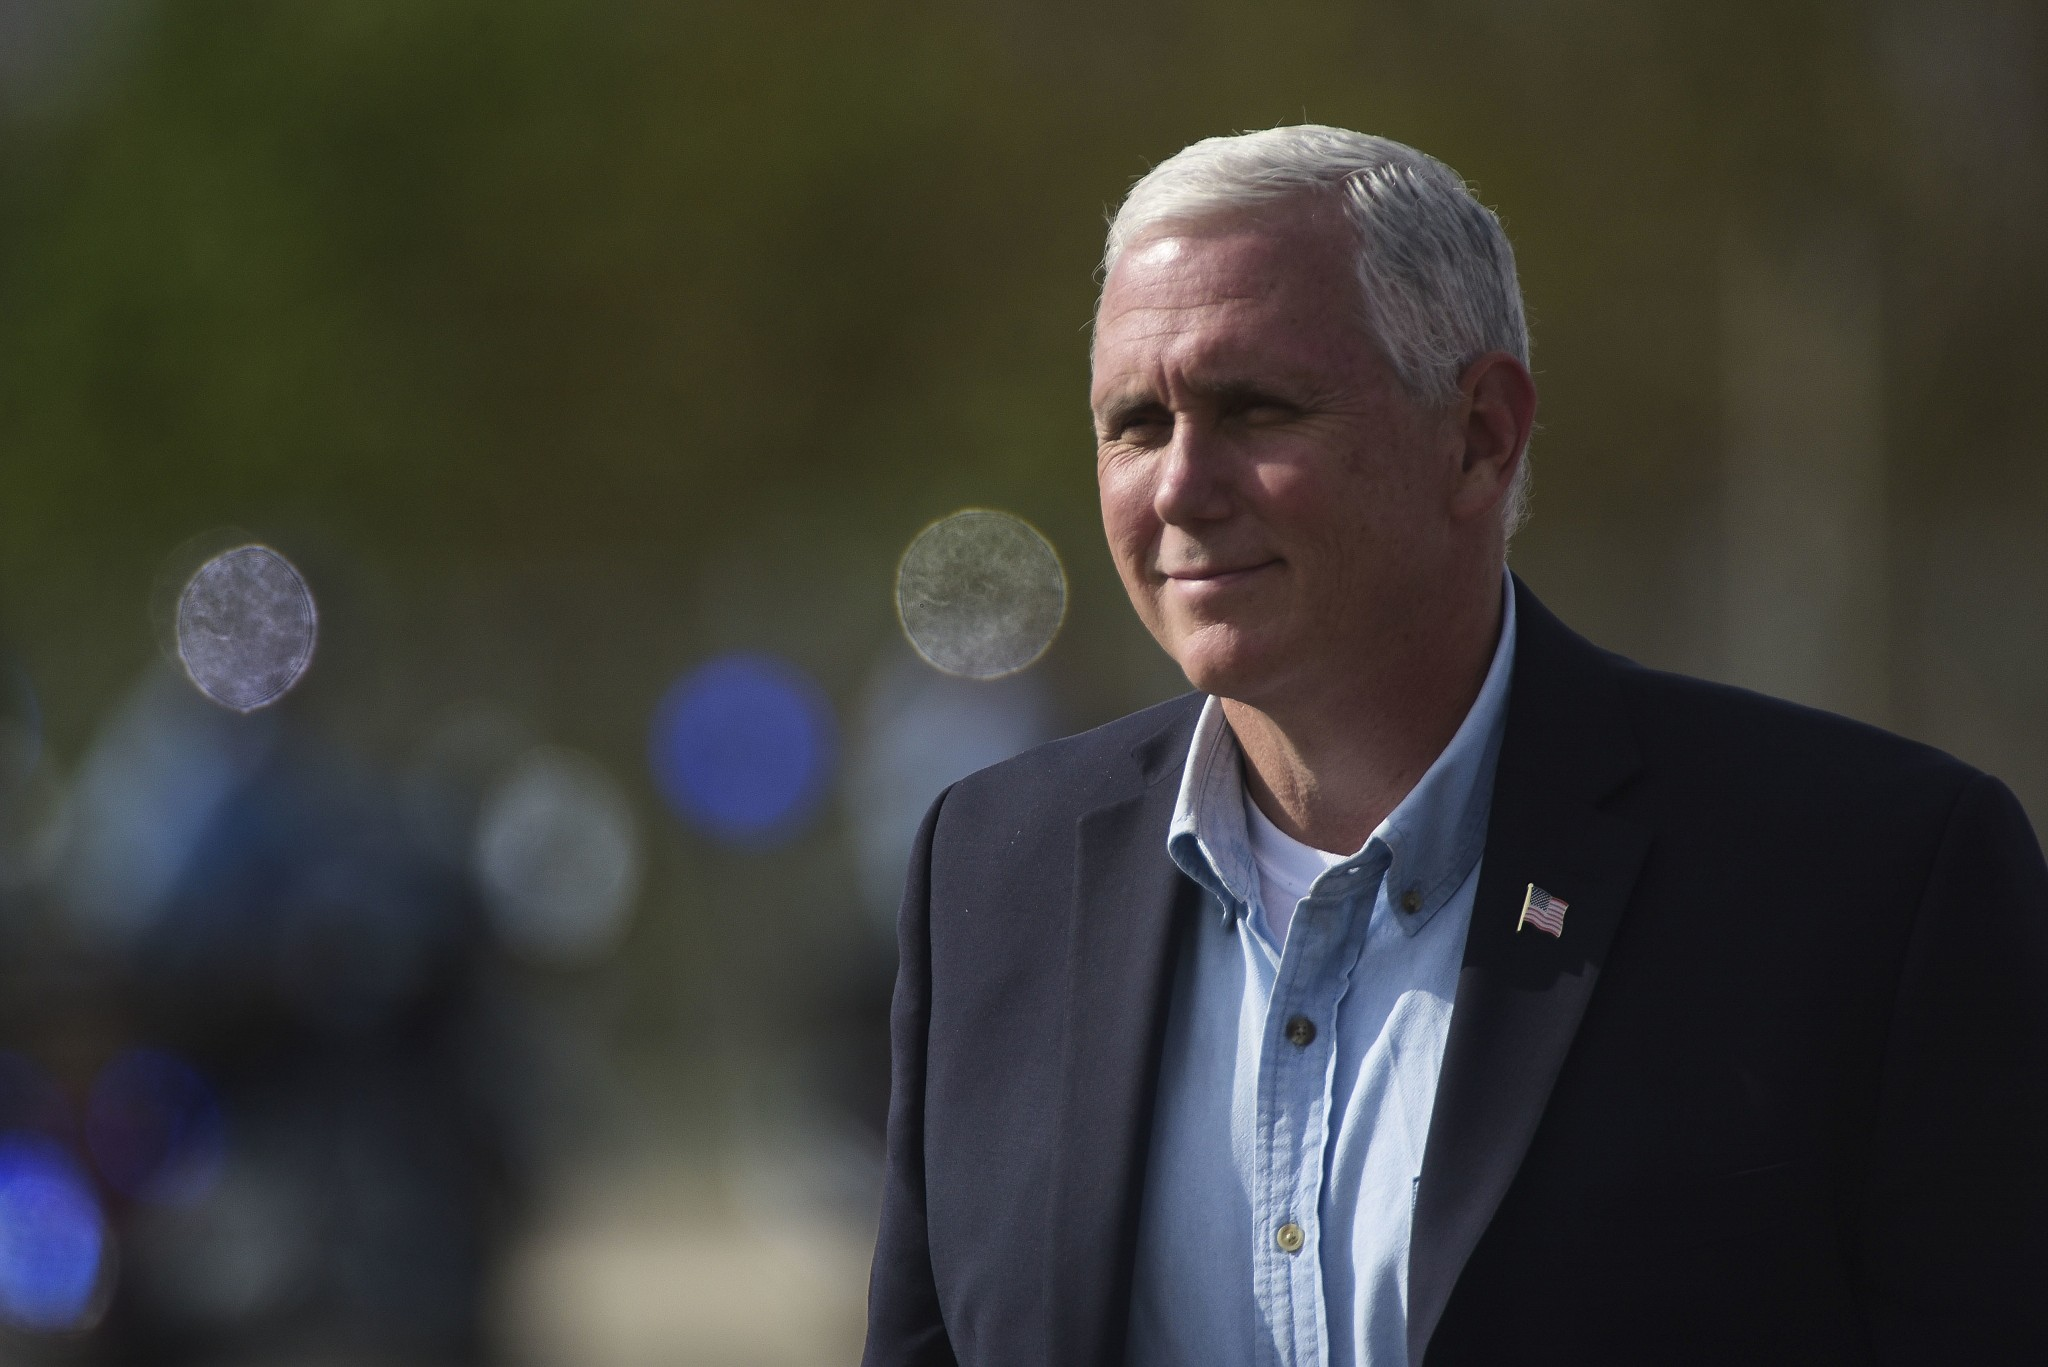 Pence's visit to Israel delayed over USA tax reform vote